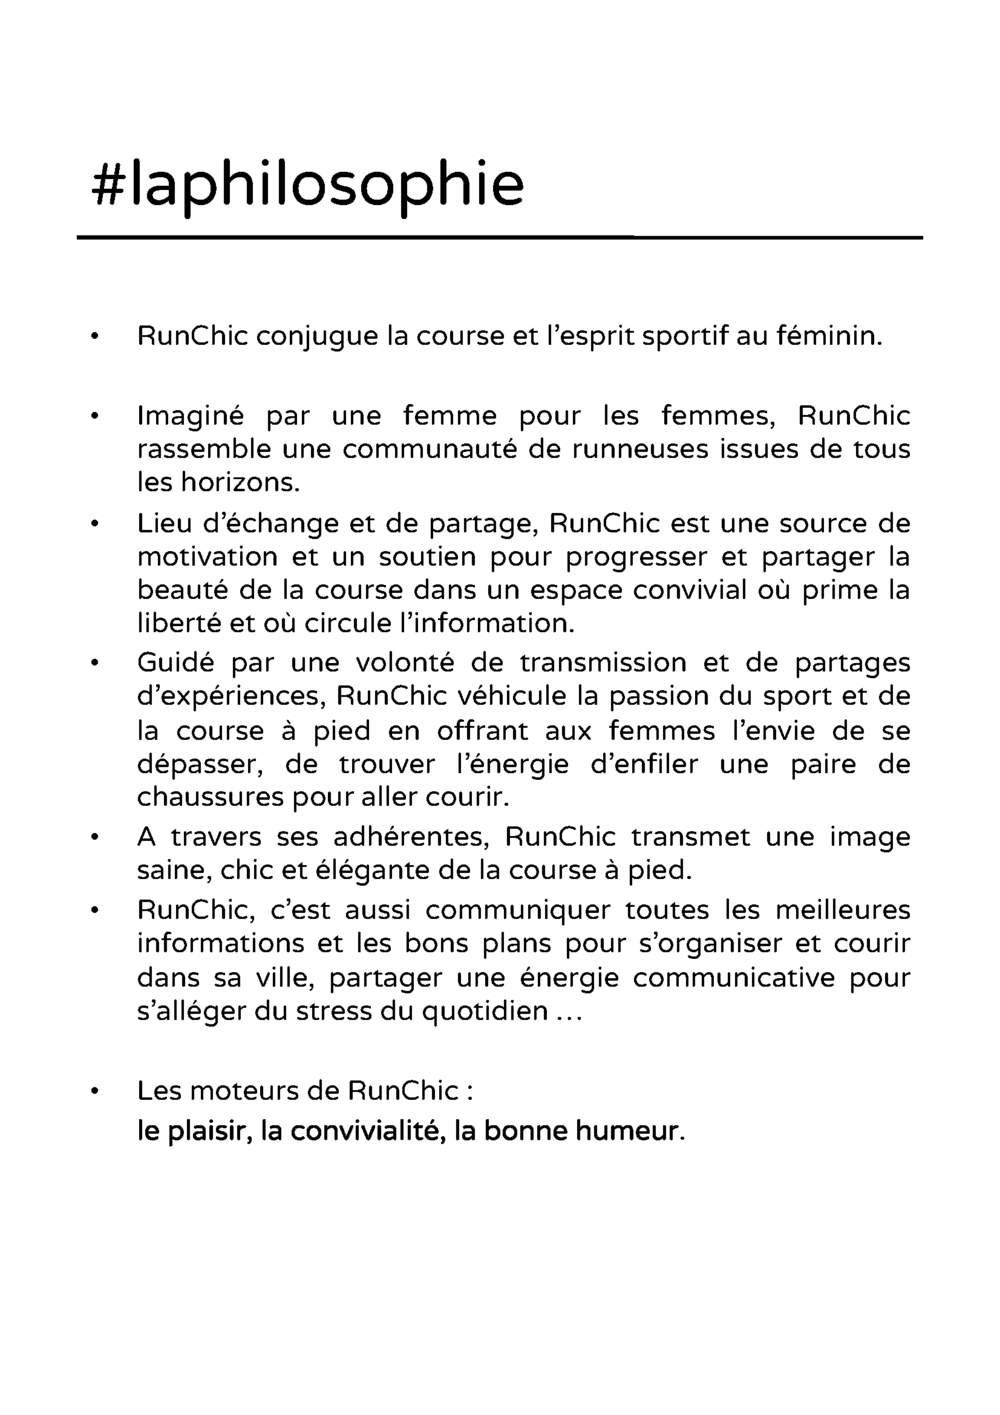 RunChic_Charte_Version def_Page_03.png